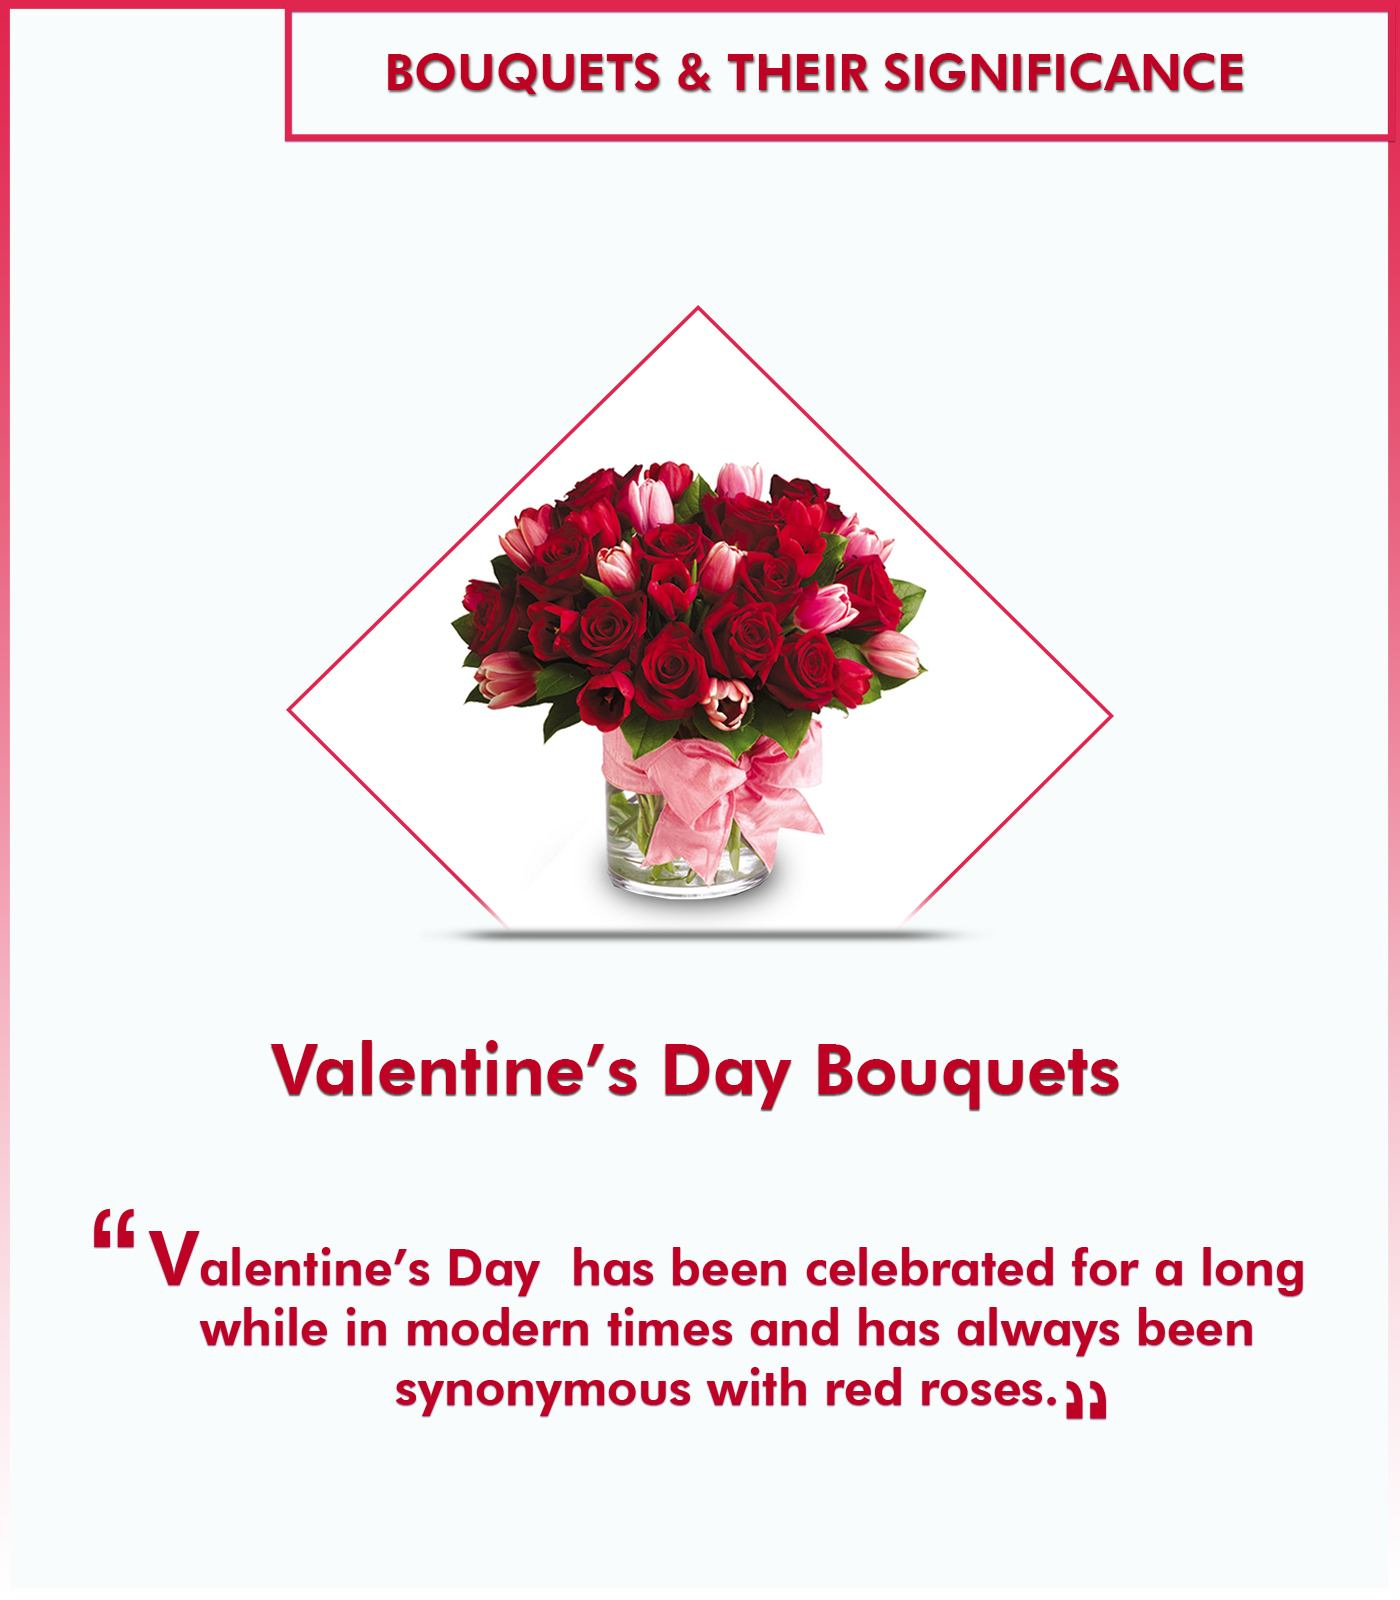 Types of bouquets and their significance - Valentine's day bouquets